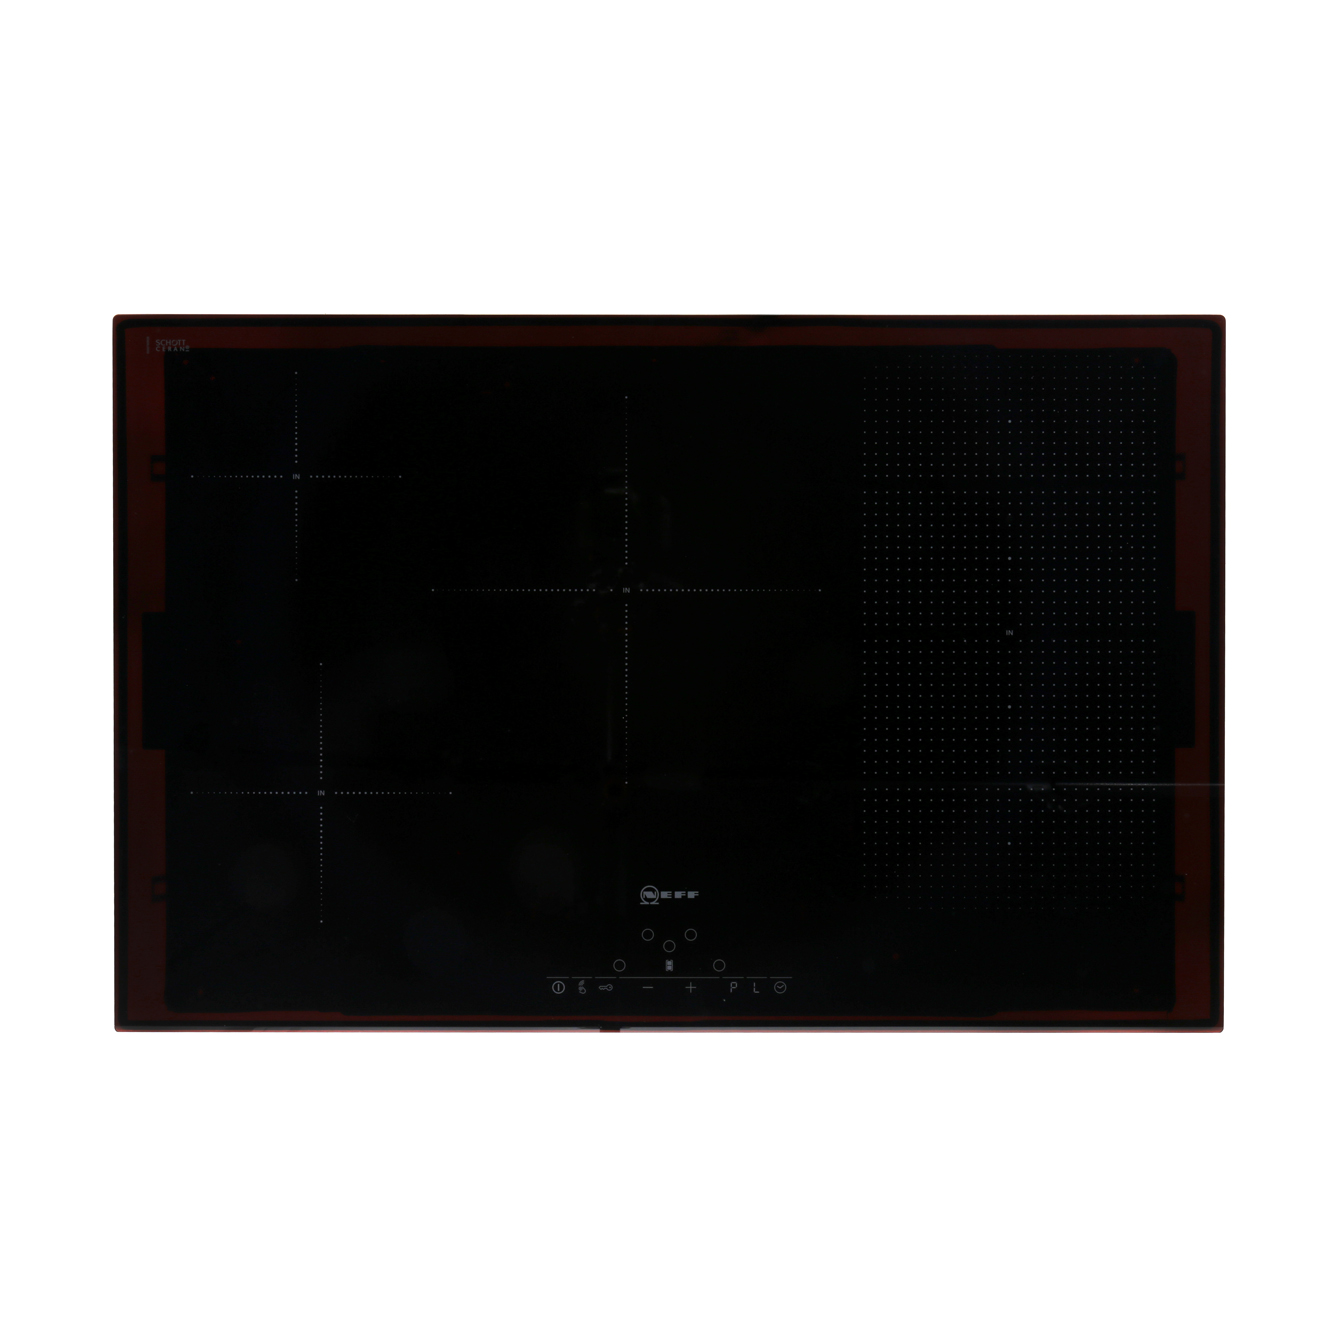 buy neff t51d86x2 induction hob frameless marks electrical. Black Bedroom Furniture Sets. Home Design Ideas